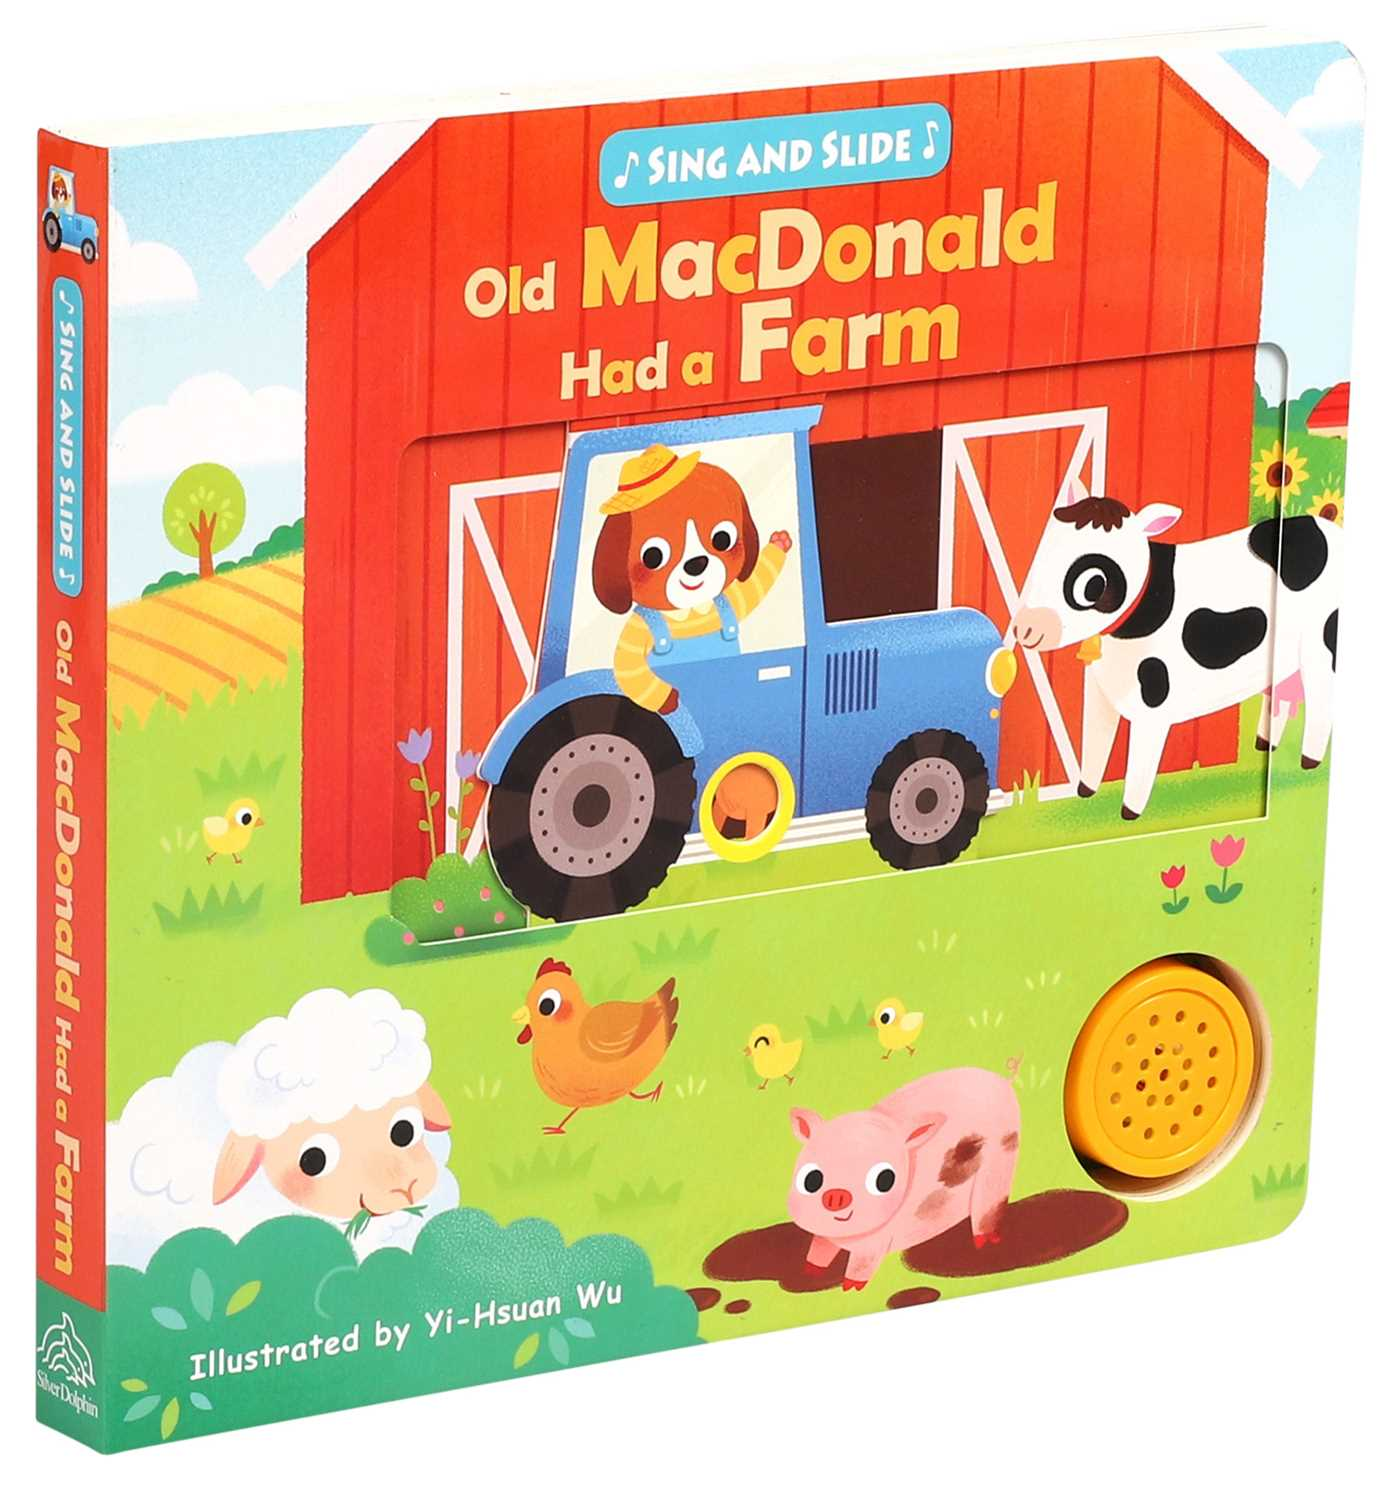 Sing and slide old macdonald had a farm 9781684121236 hr